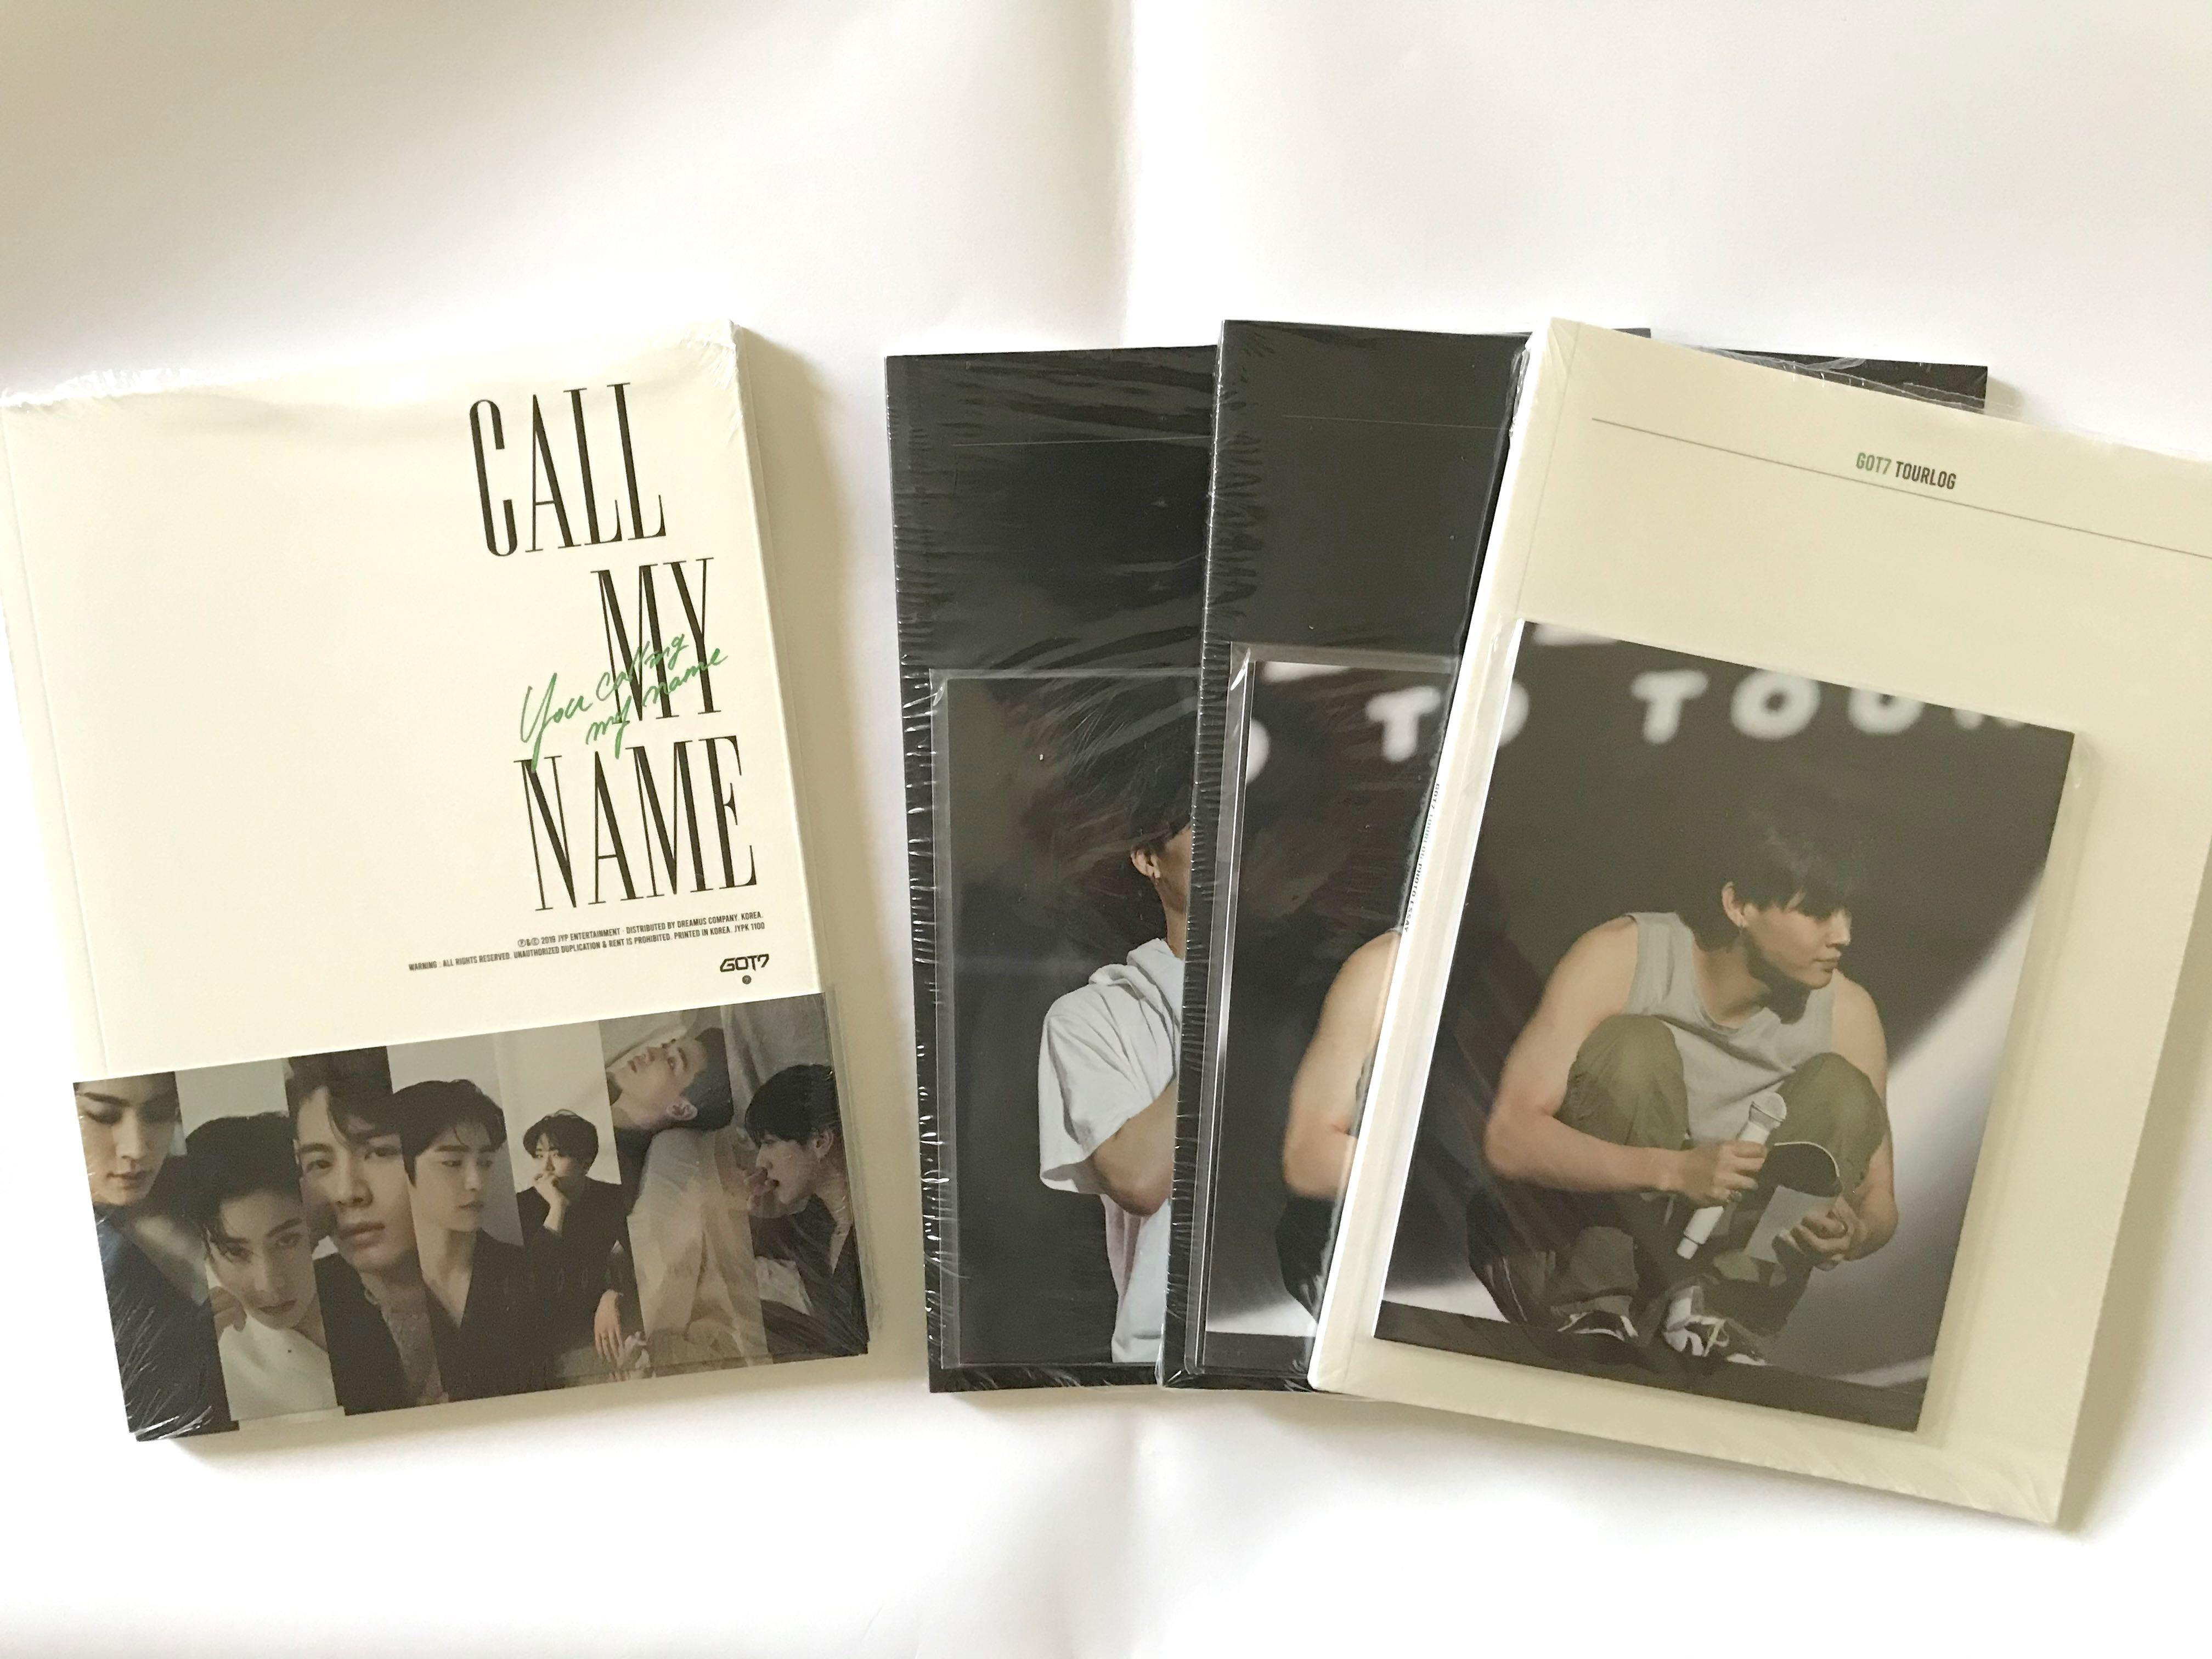 [WTS]  GOT7 Call My Name Official Album + free poster (folded)